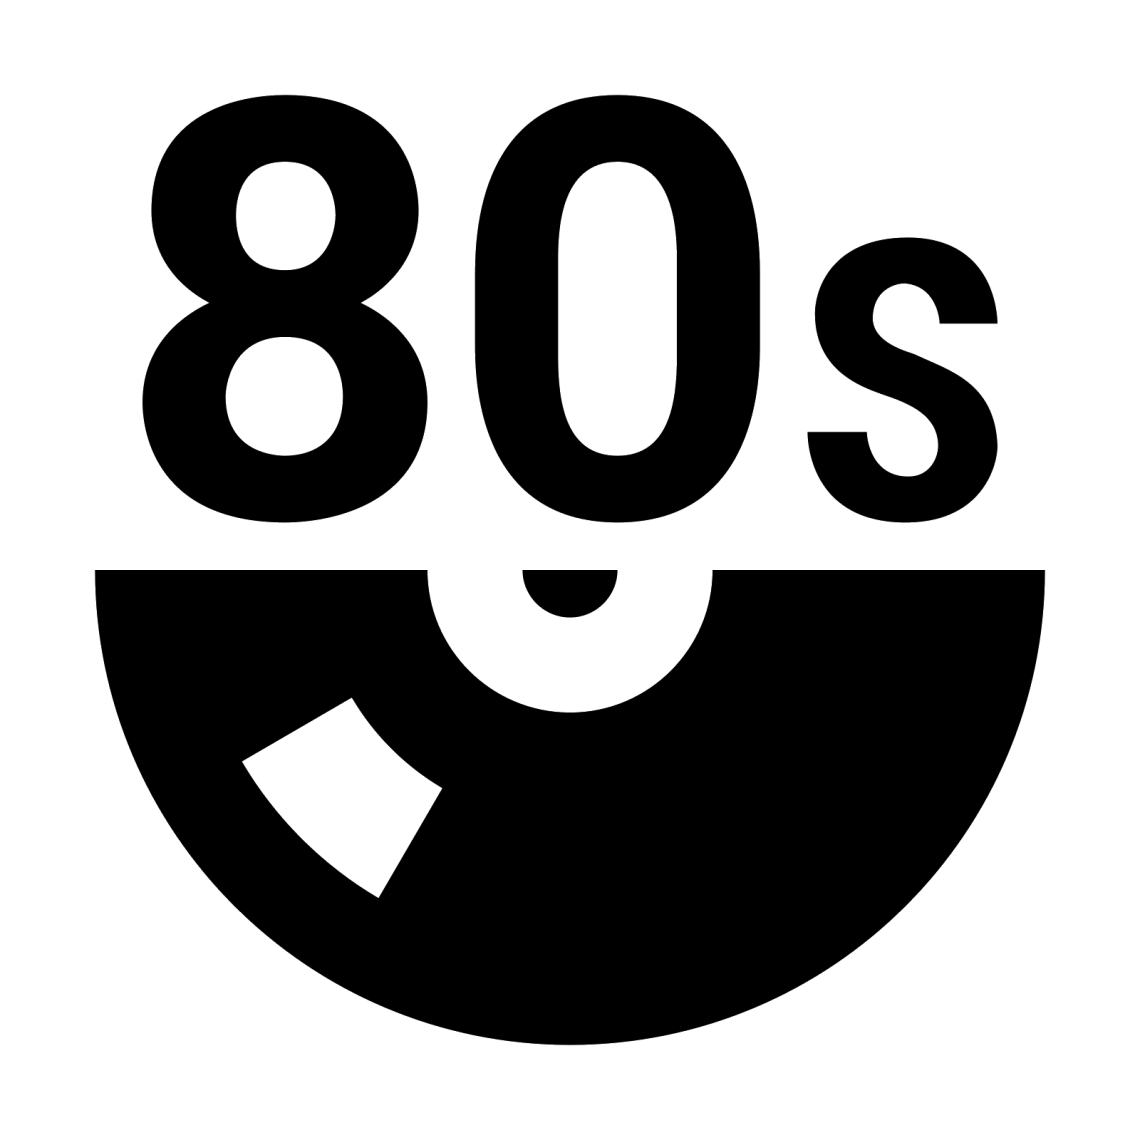 Download Library of i heart the 80s svg black and white png files ...